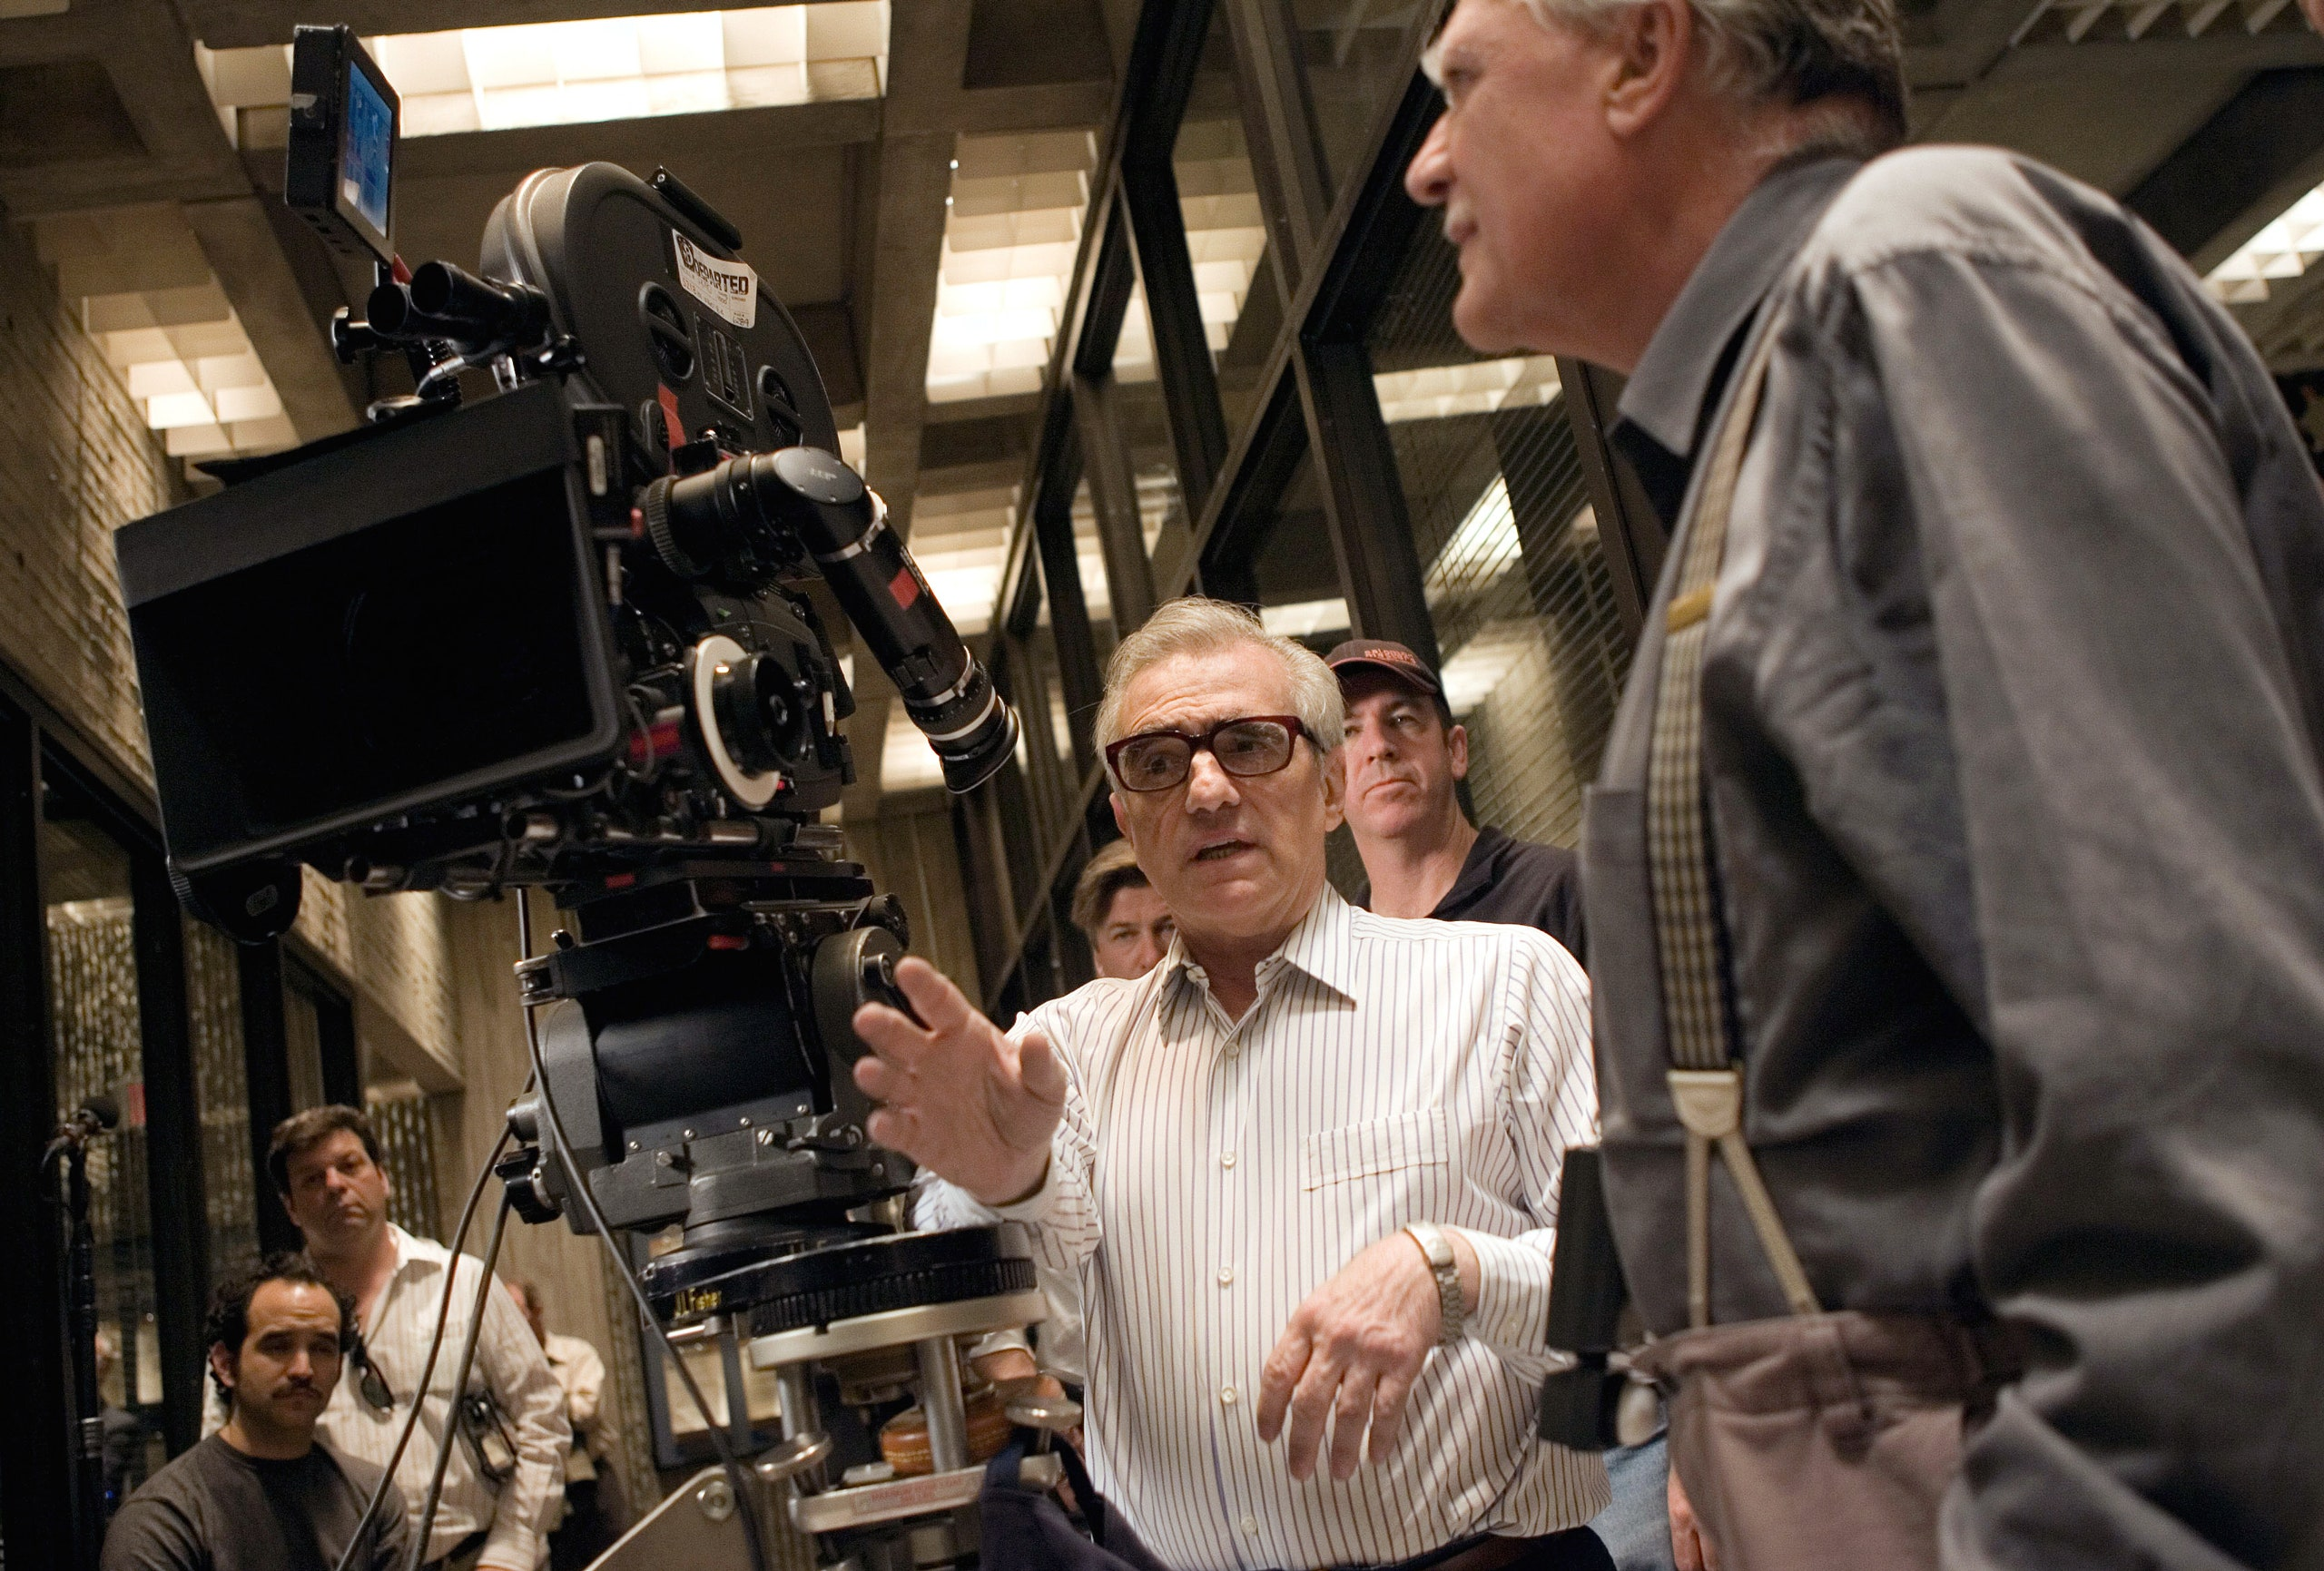 WATCH >> Notes on an American film director at work